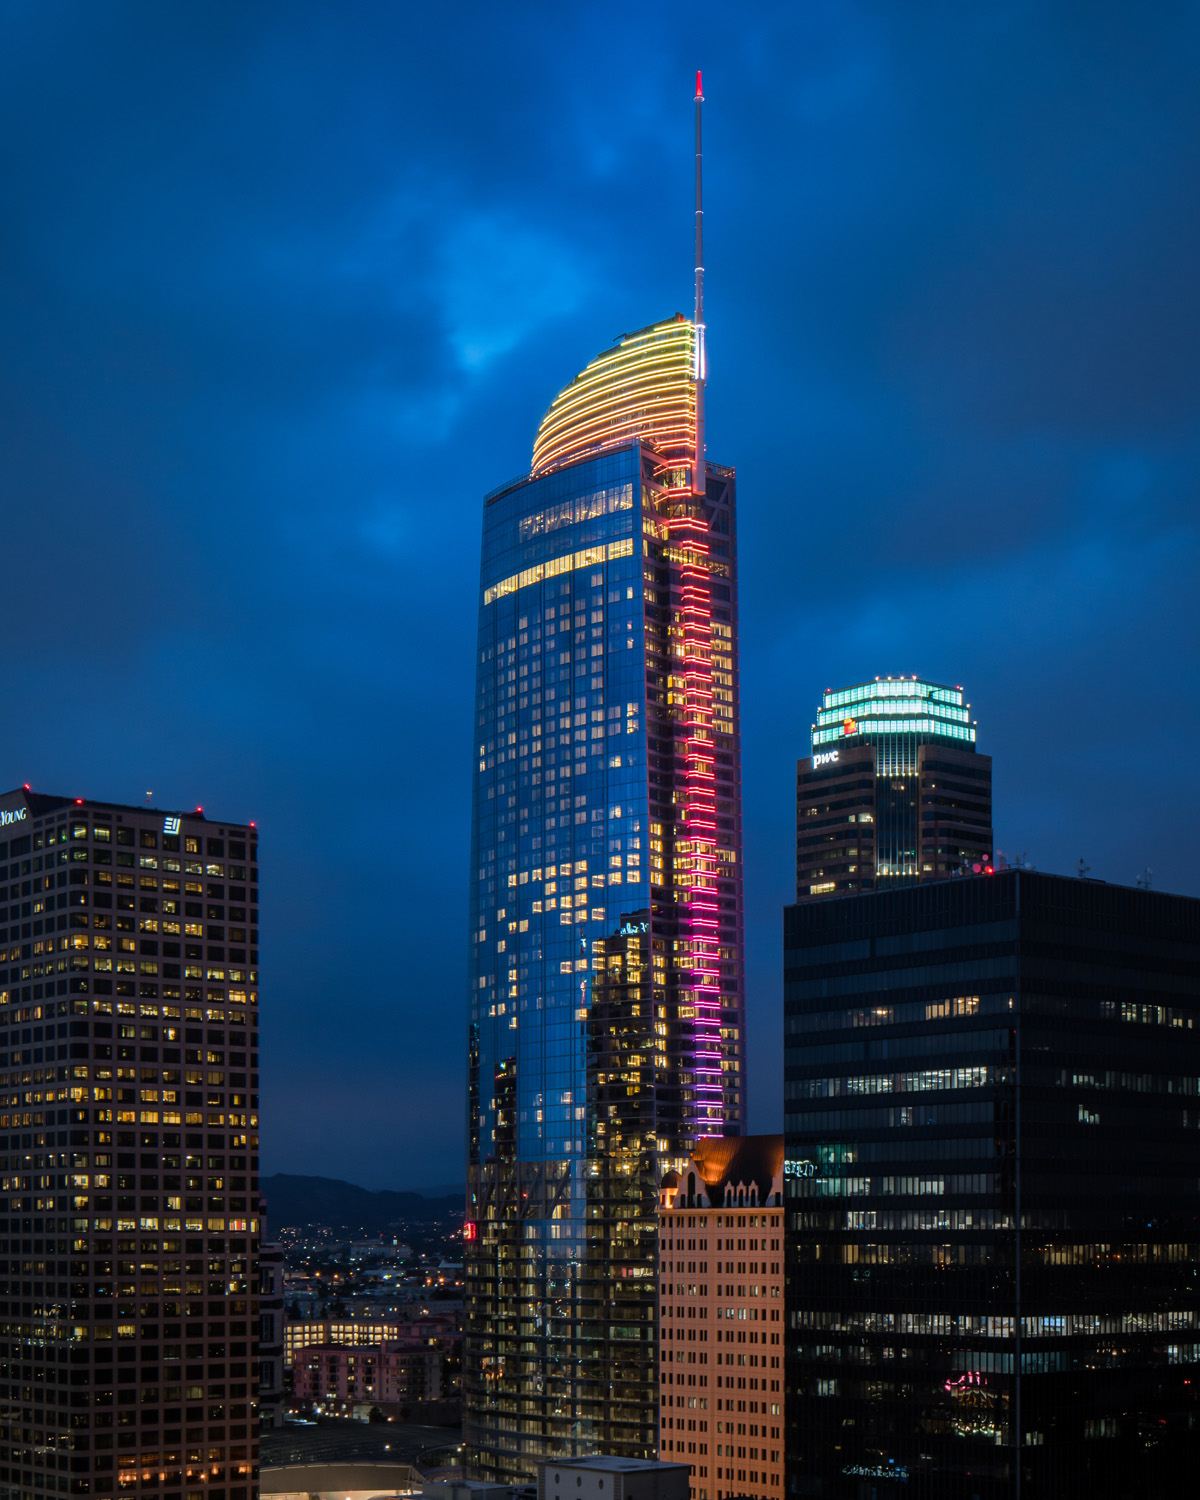 Wilshire Grand Lights (Sunset Colors)